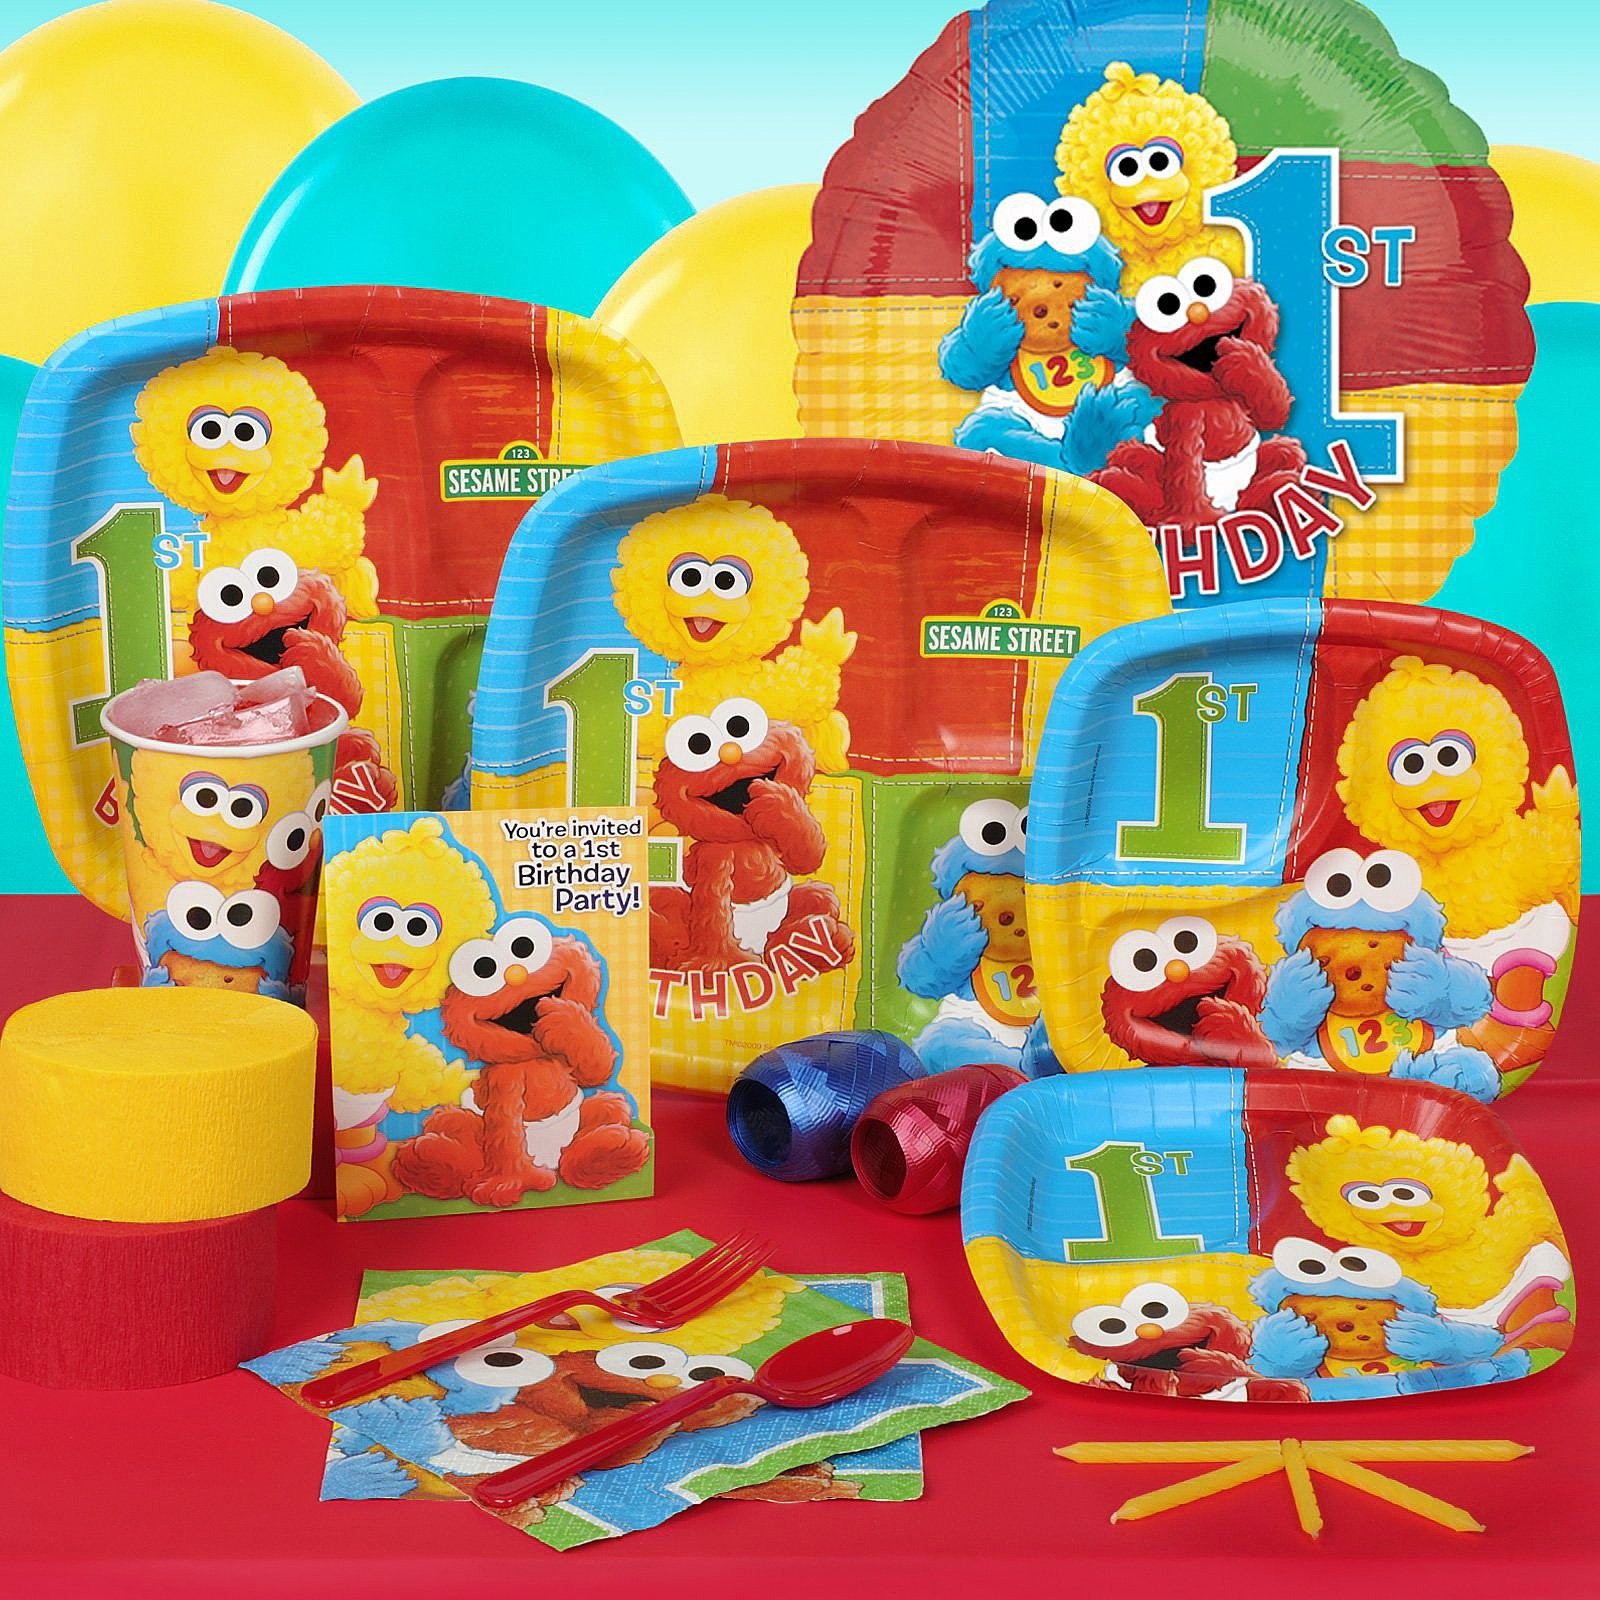 Sesame Street Bedroom Decorations 1st Birthday Themes Help Momspotted